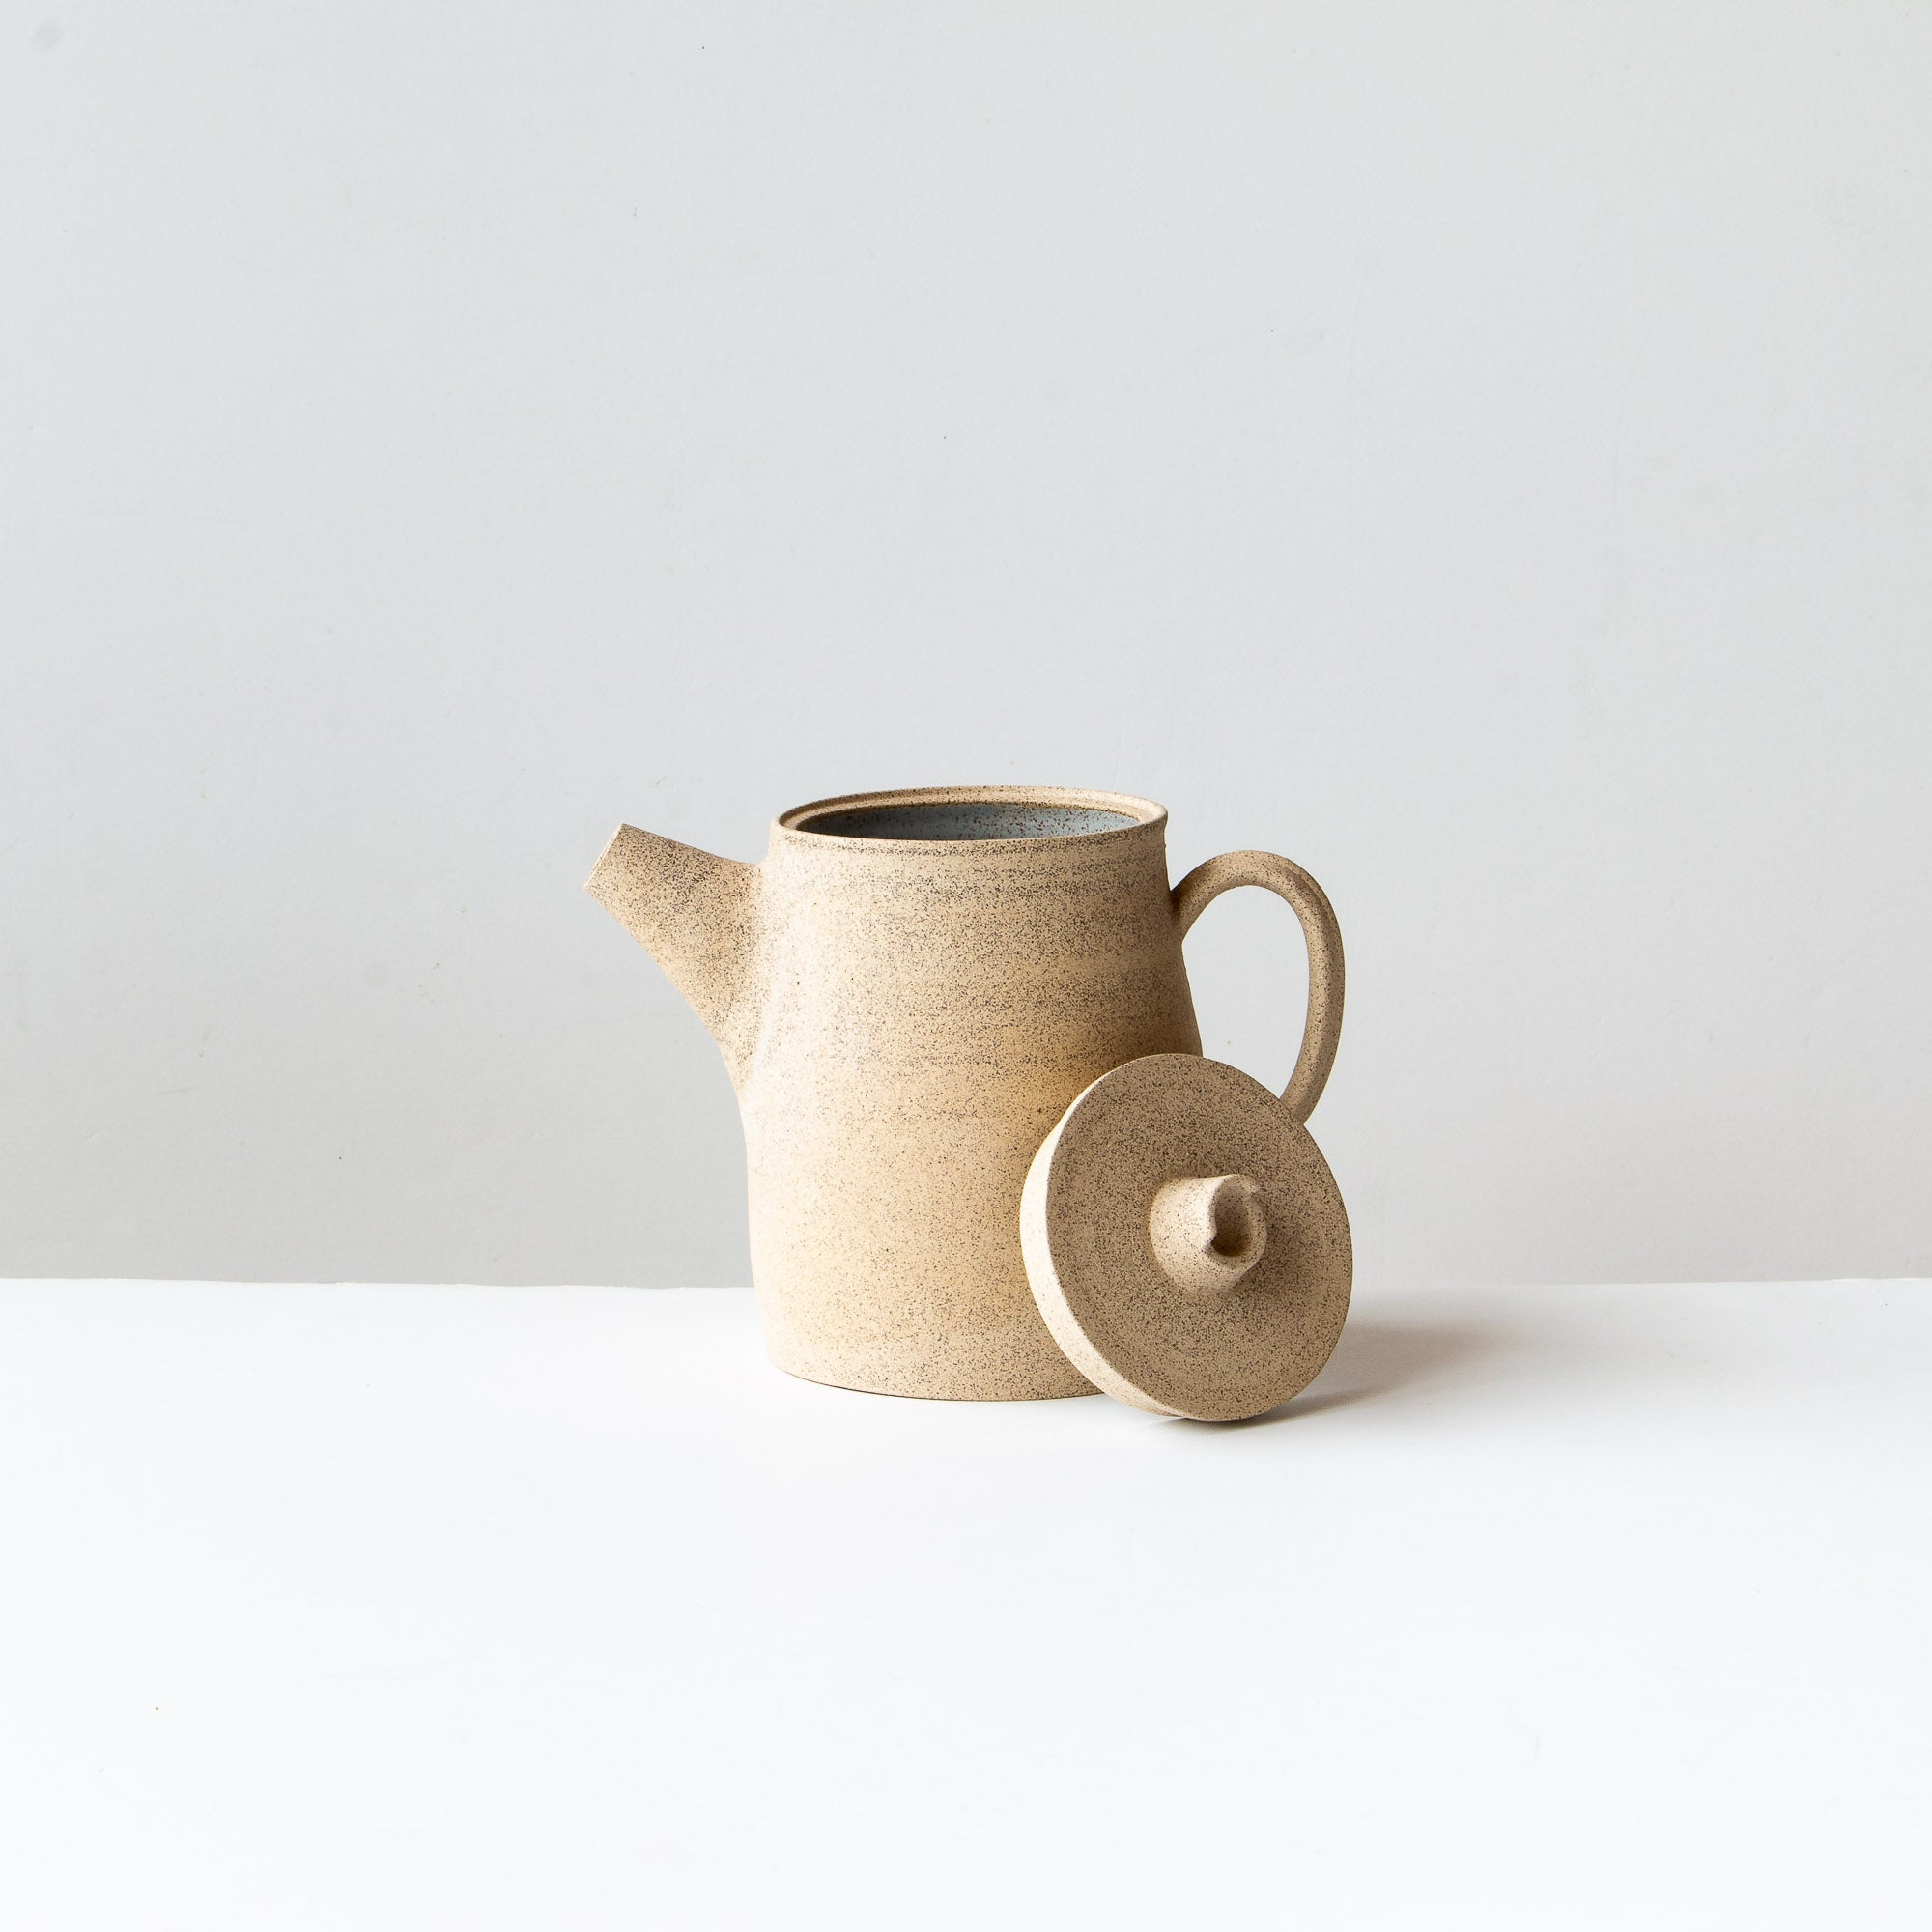 Speckled Stoneware Tea-pot - Pale Blue Glaze - Sold by Chic & Basta